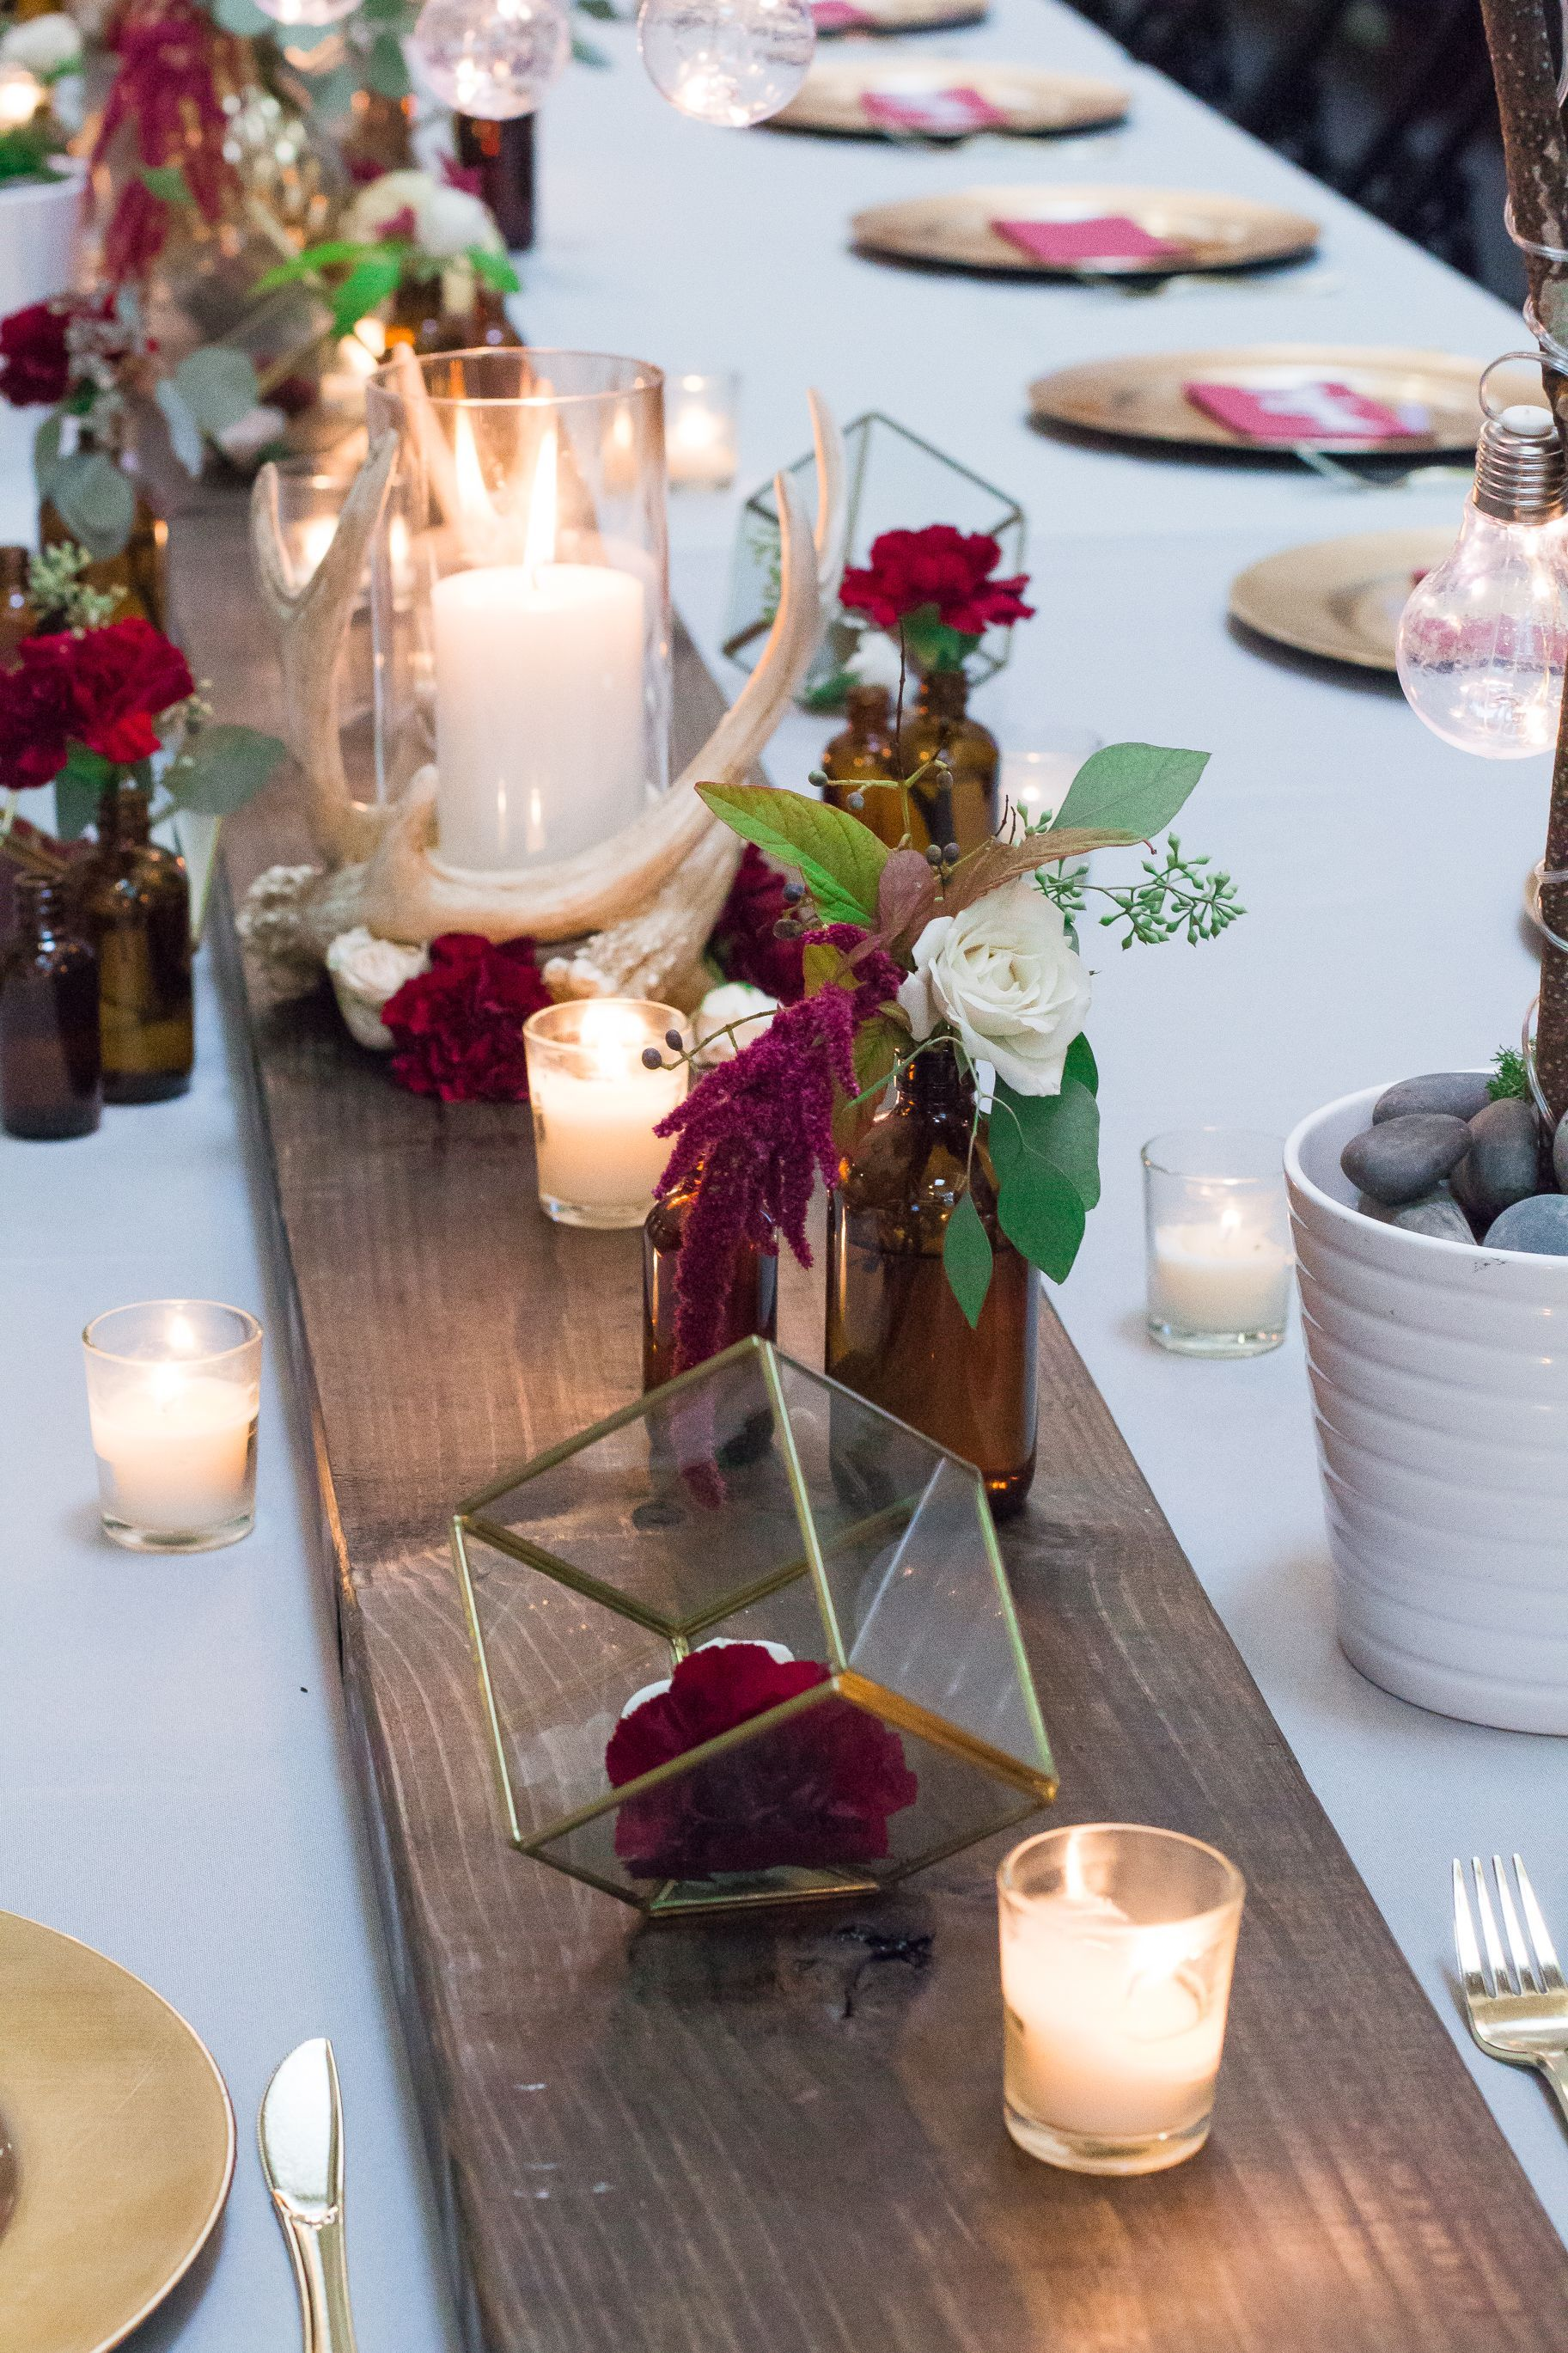 Burgundy & Gold Thanksgiving Tablescape Sweetwood Creative Co. | Atlanta Wedding Planner + Upscale Event Design